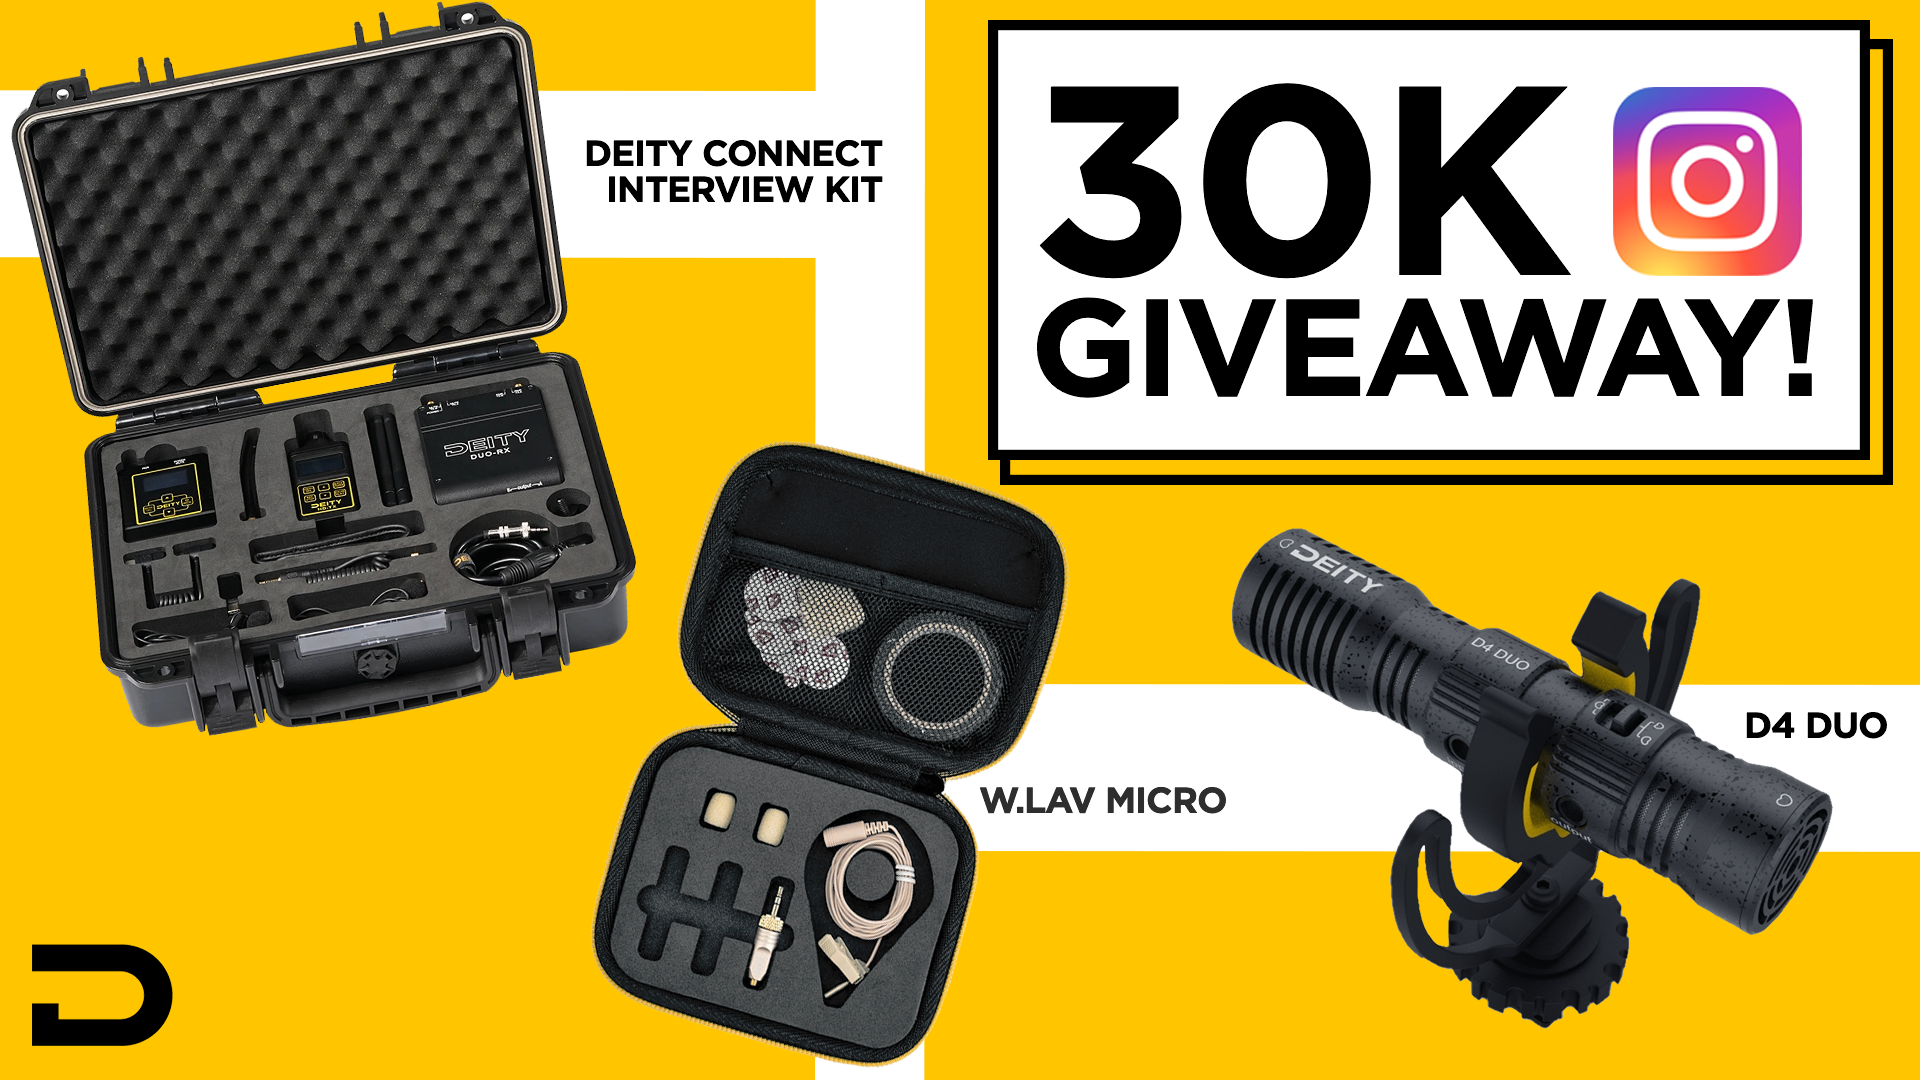 Win 1 of 16 Deity Microphone Prizes (Grand Prize: Deity Connect Kit with a W.Lav Micro DA35 bundle) Giveaway Image